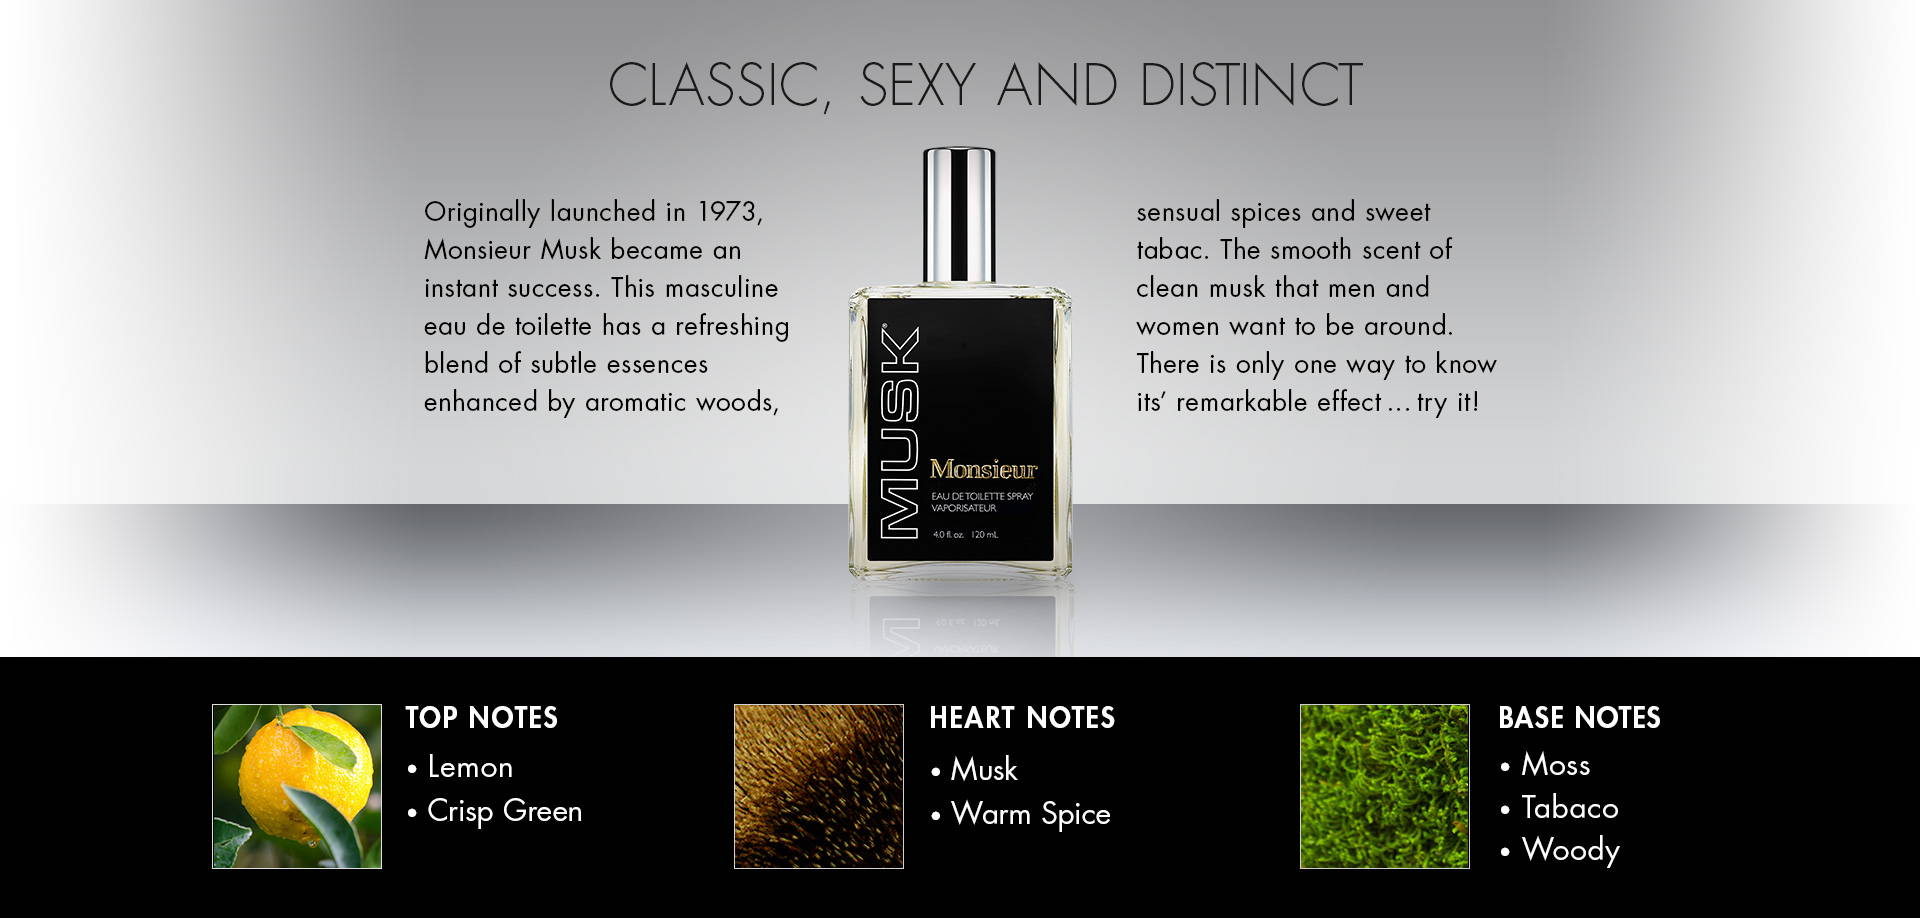 Classic, Sexy and Distinct. Originally launched in 1973, Monsieur Musk became an instant success. This masculine cologne has a refreshing blend of subtle essences with a complex background to enhance the experience.The smooth scent of clean musk that men and women want to be around. There is only one way to know its' remarkable effect … try it! TOP NOTES • Lemon• Crisp Green. HEART NOTES • Musk• Warm Spice. BASE NOTES • Moss• Tabaco• Woody.